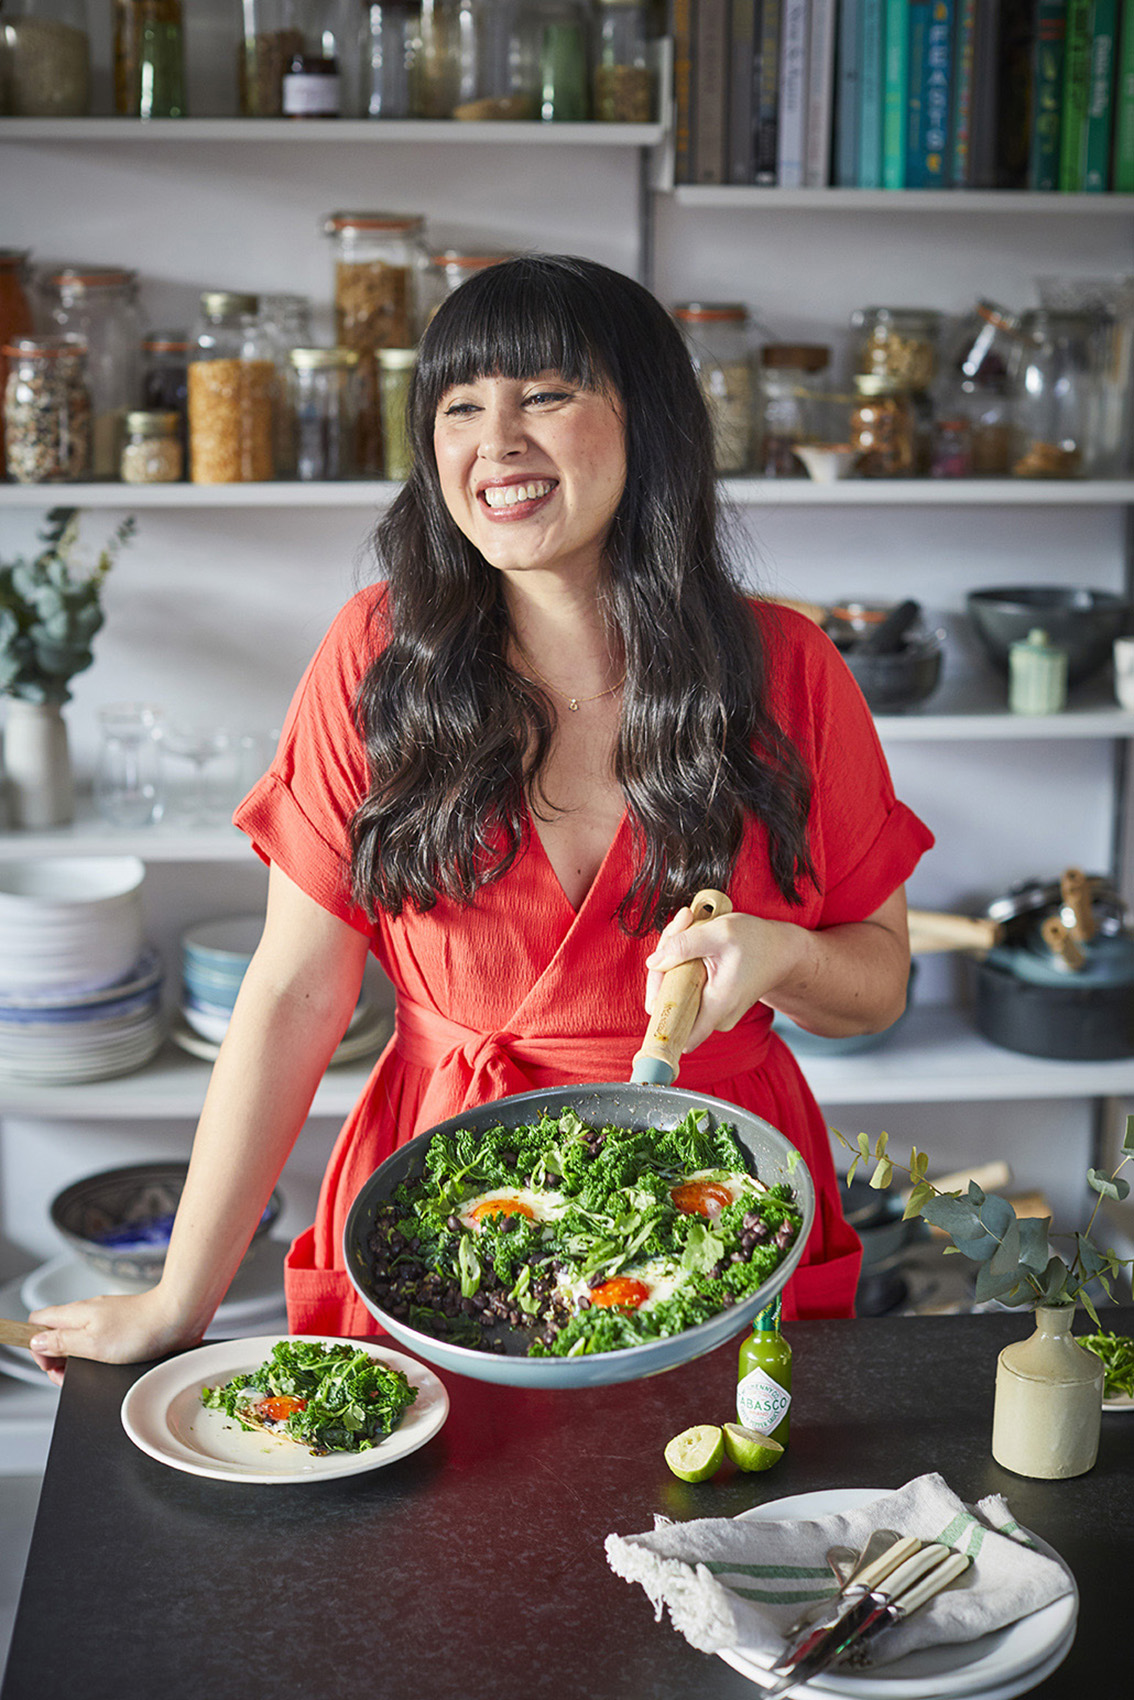 SteveRyan_Photographer_Portraits_People_MelissaHemsley_14